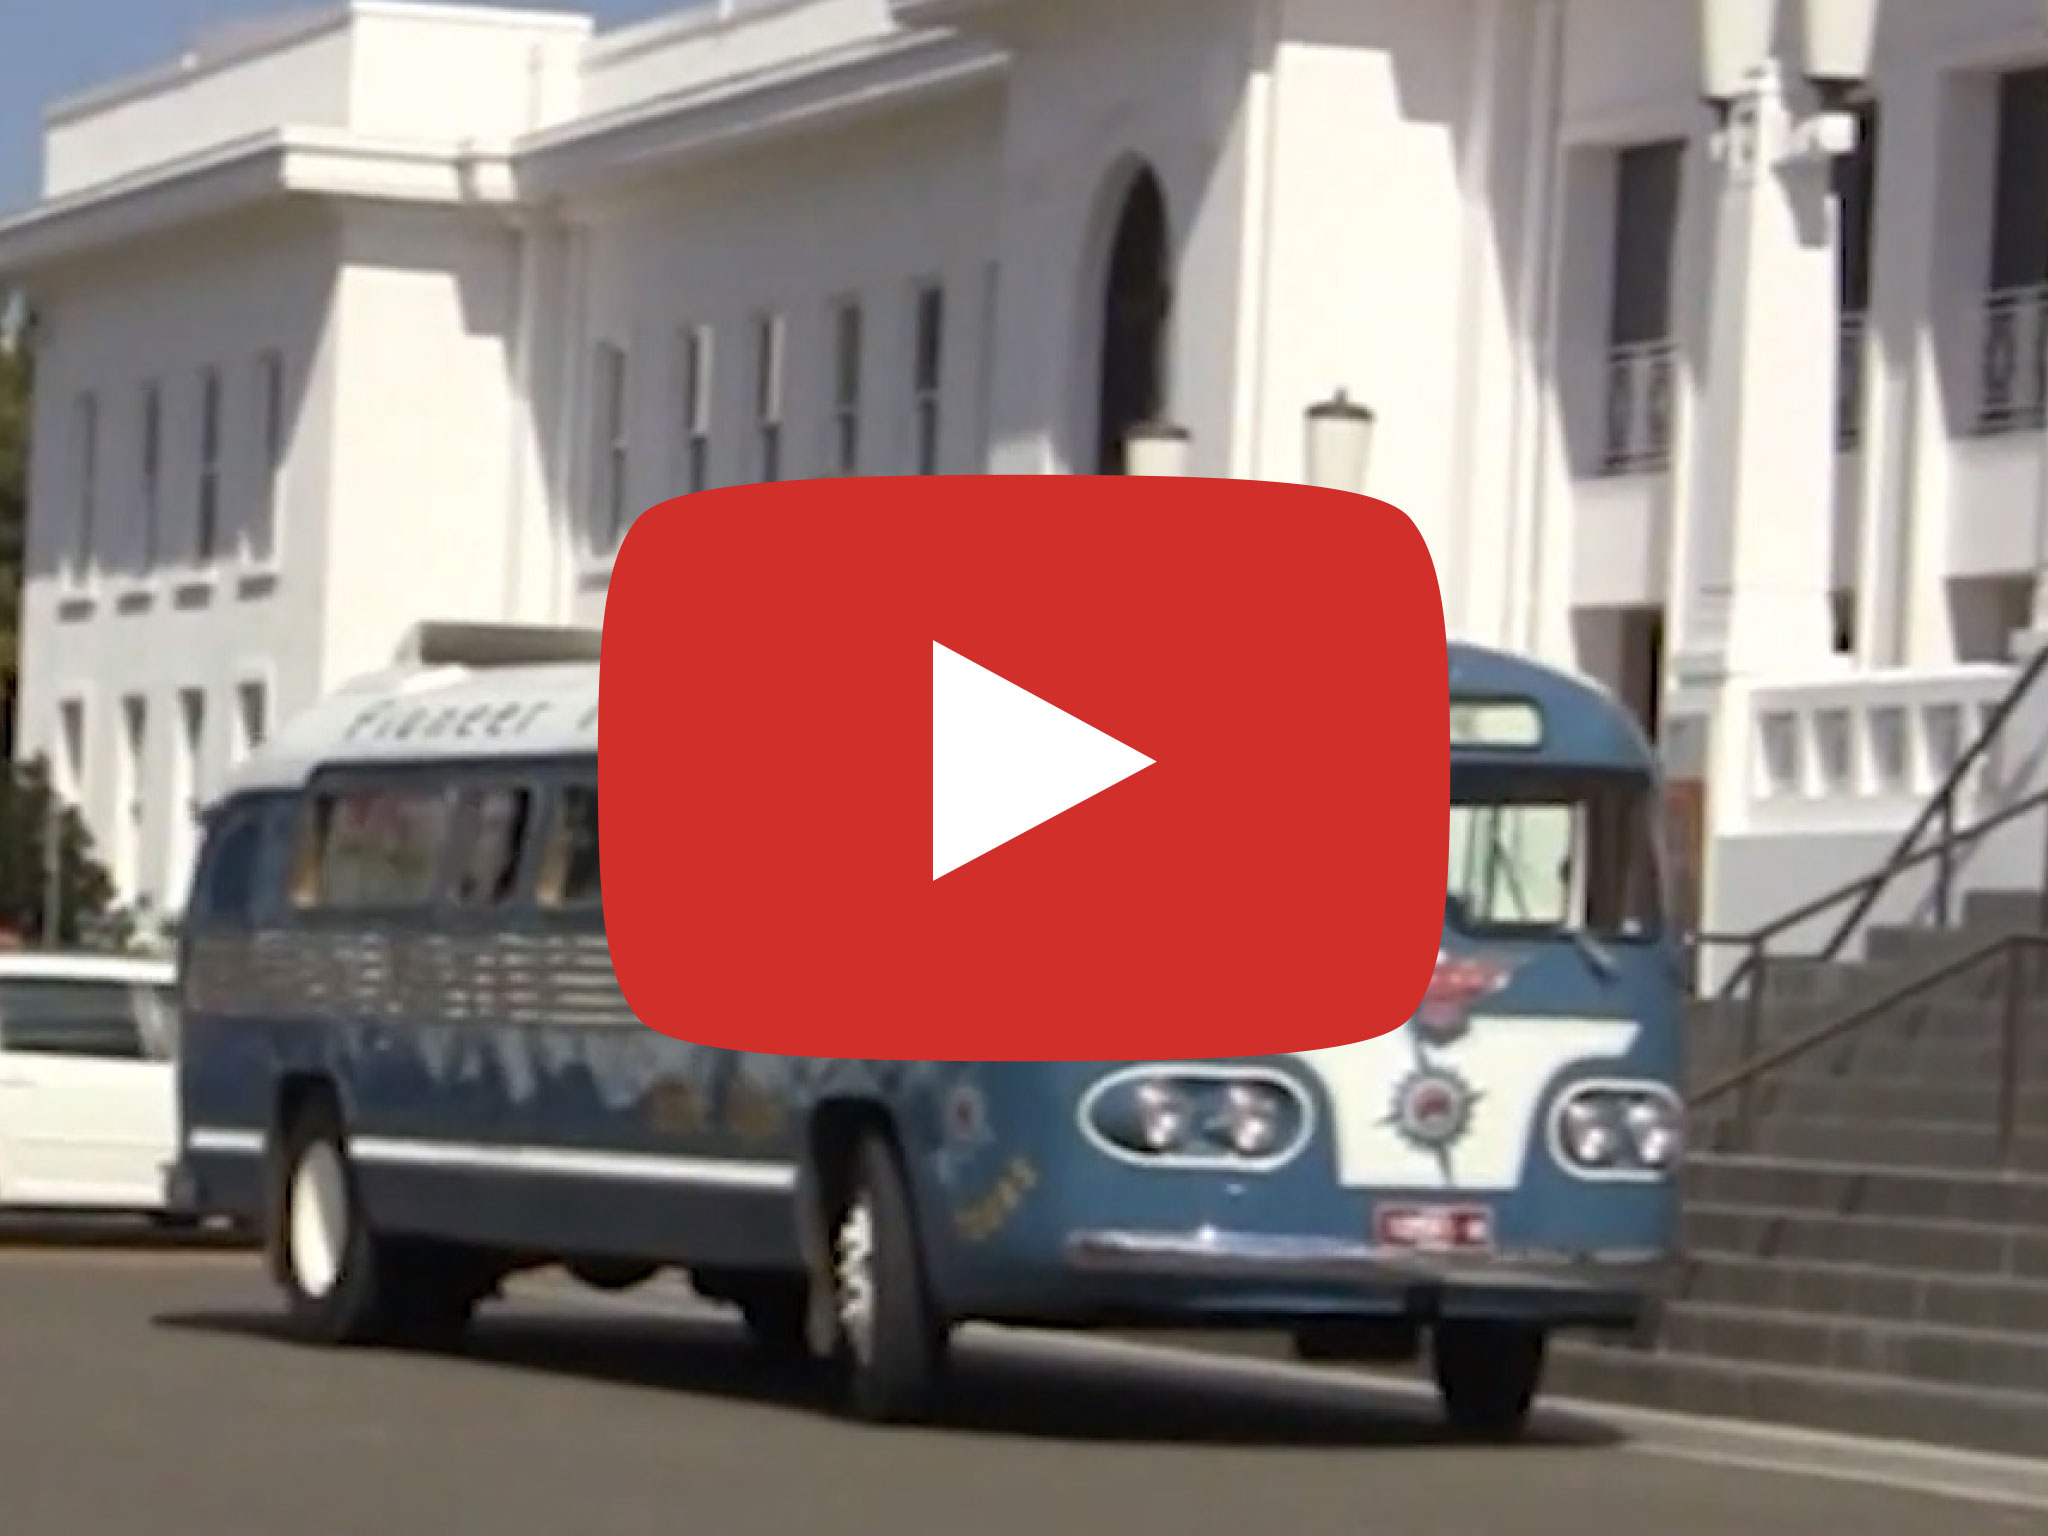 Flxible Clipper bus, 1954 model, Driving in Canberra ACT, Video taken by David Kemp in 2015